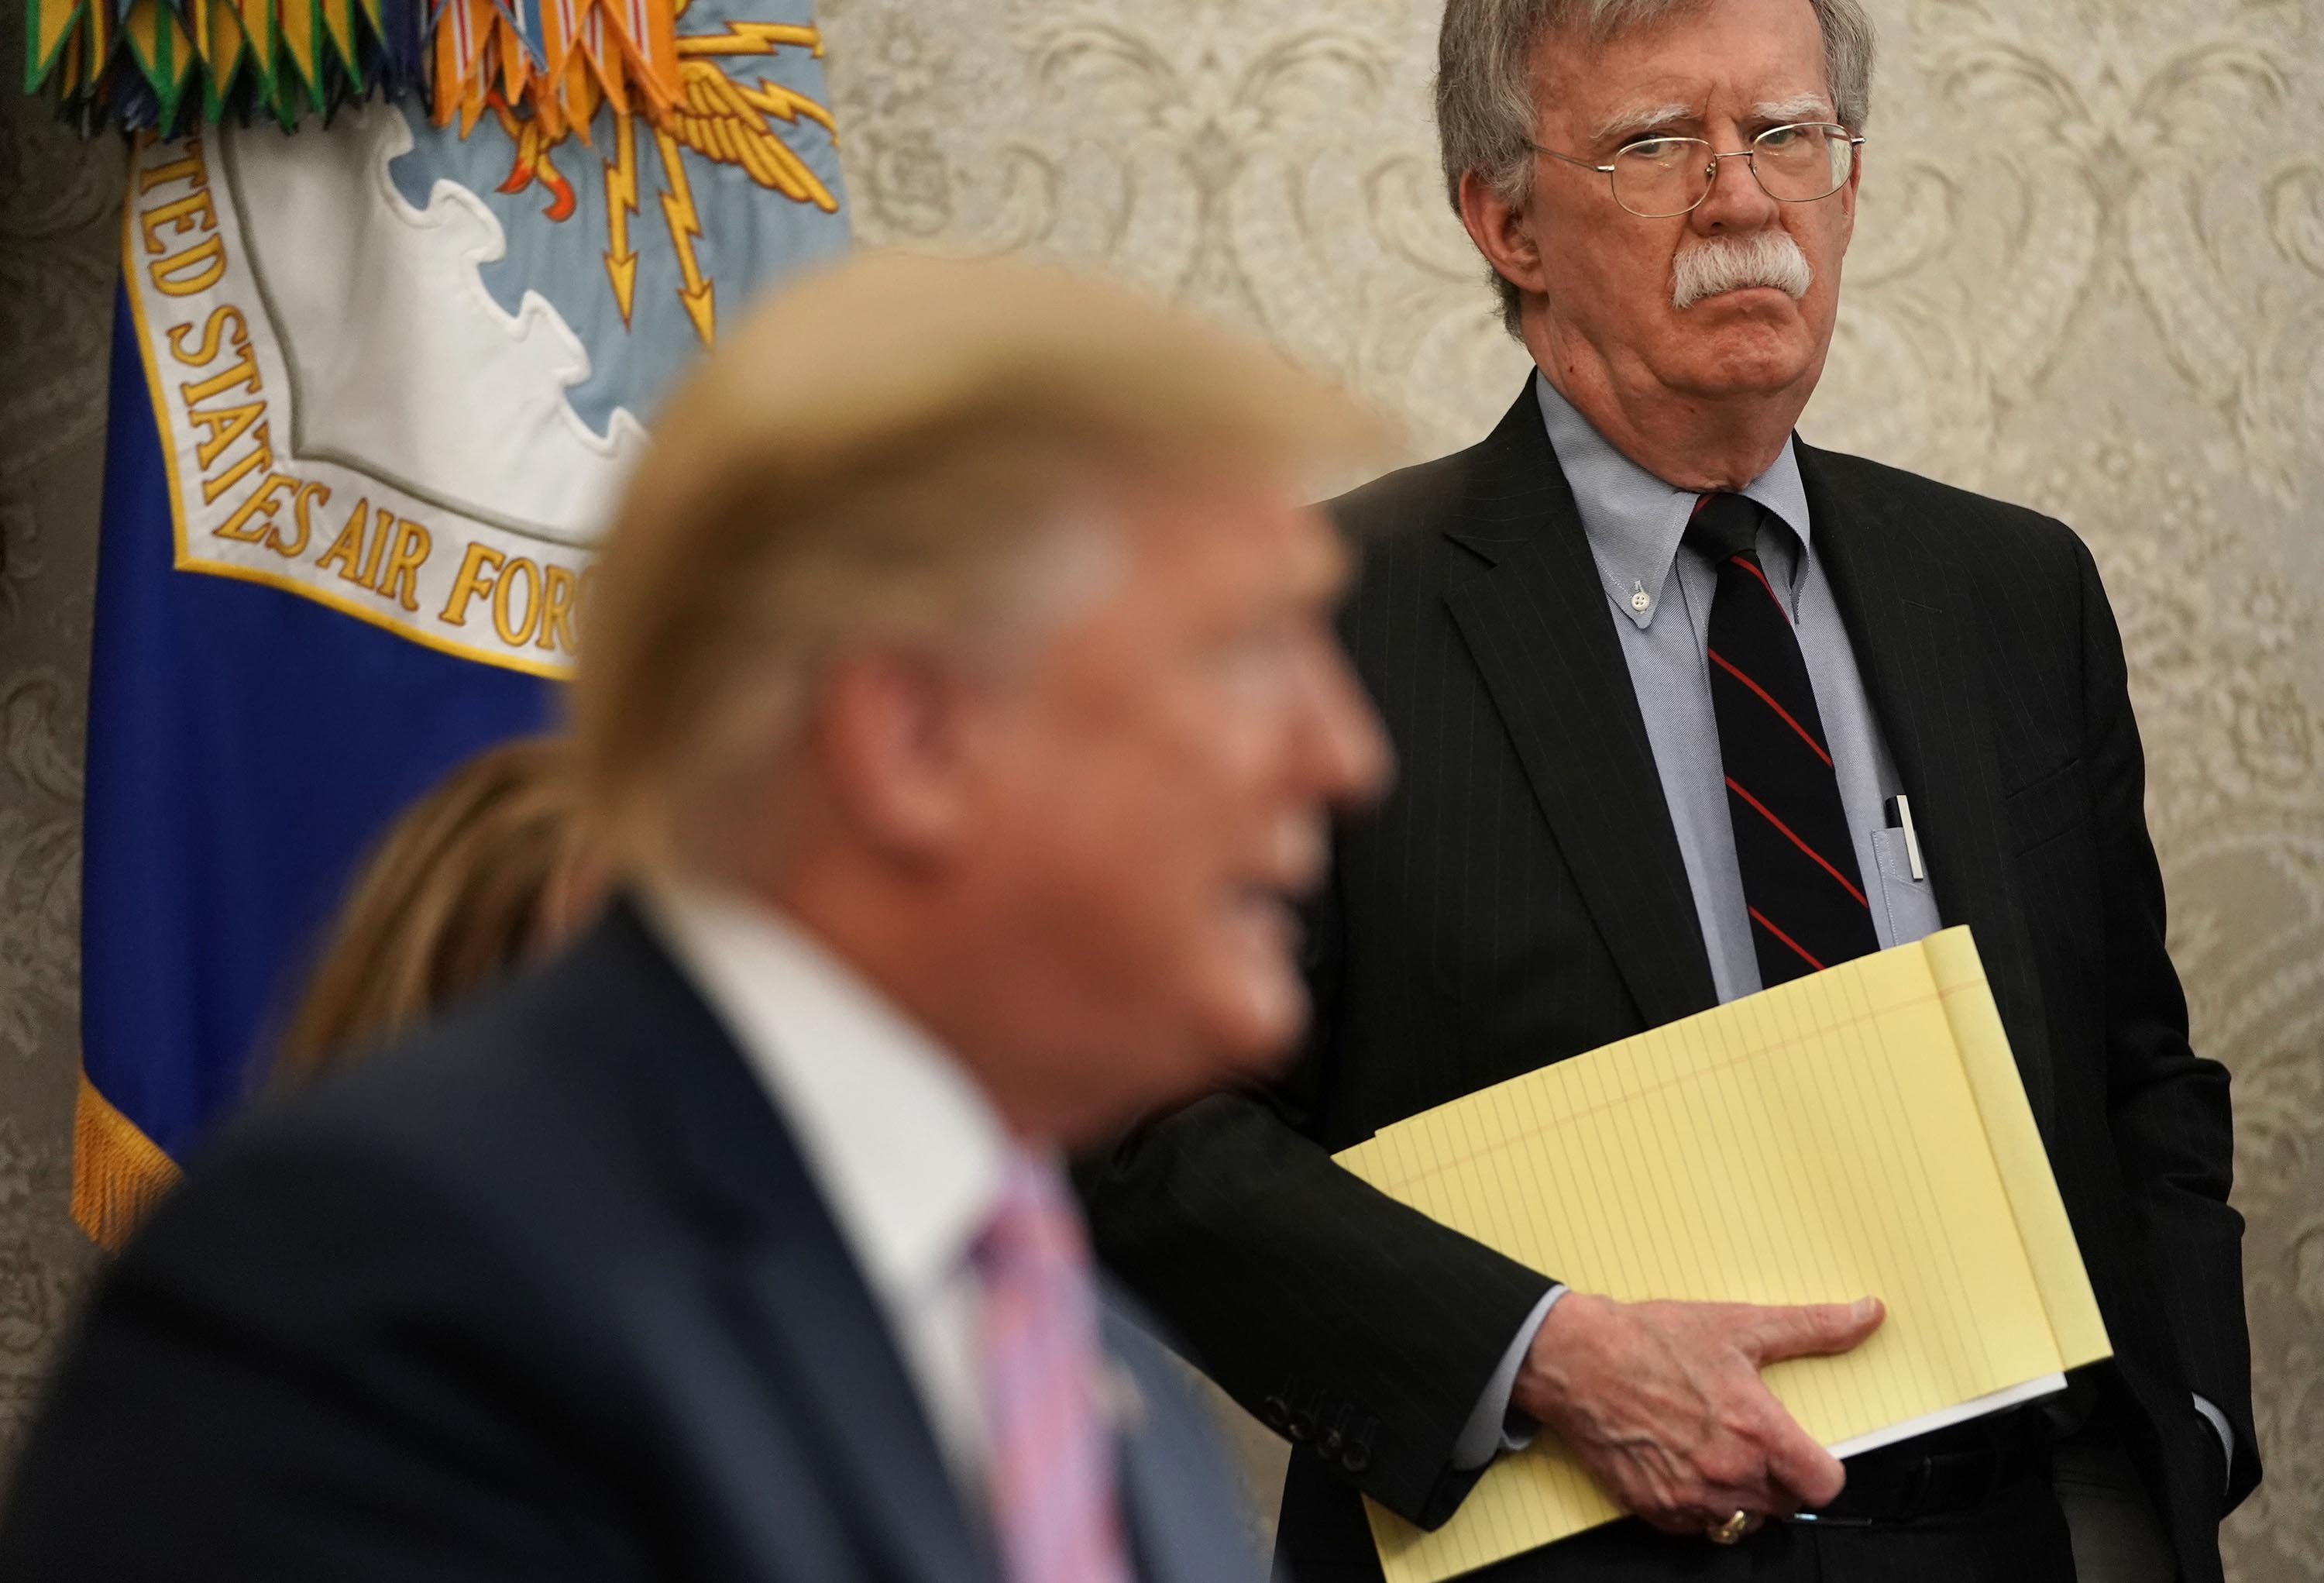 Bolton: 'I have enough scars' from bringing up Russia-related intelligence with Trump